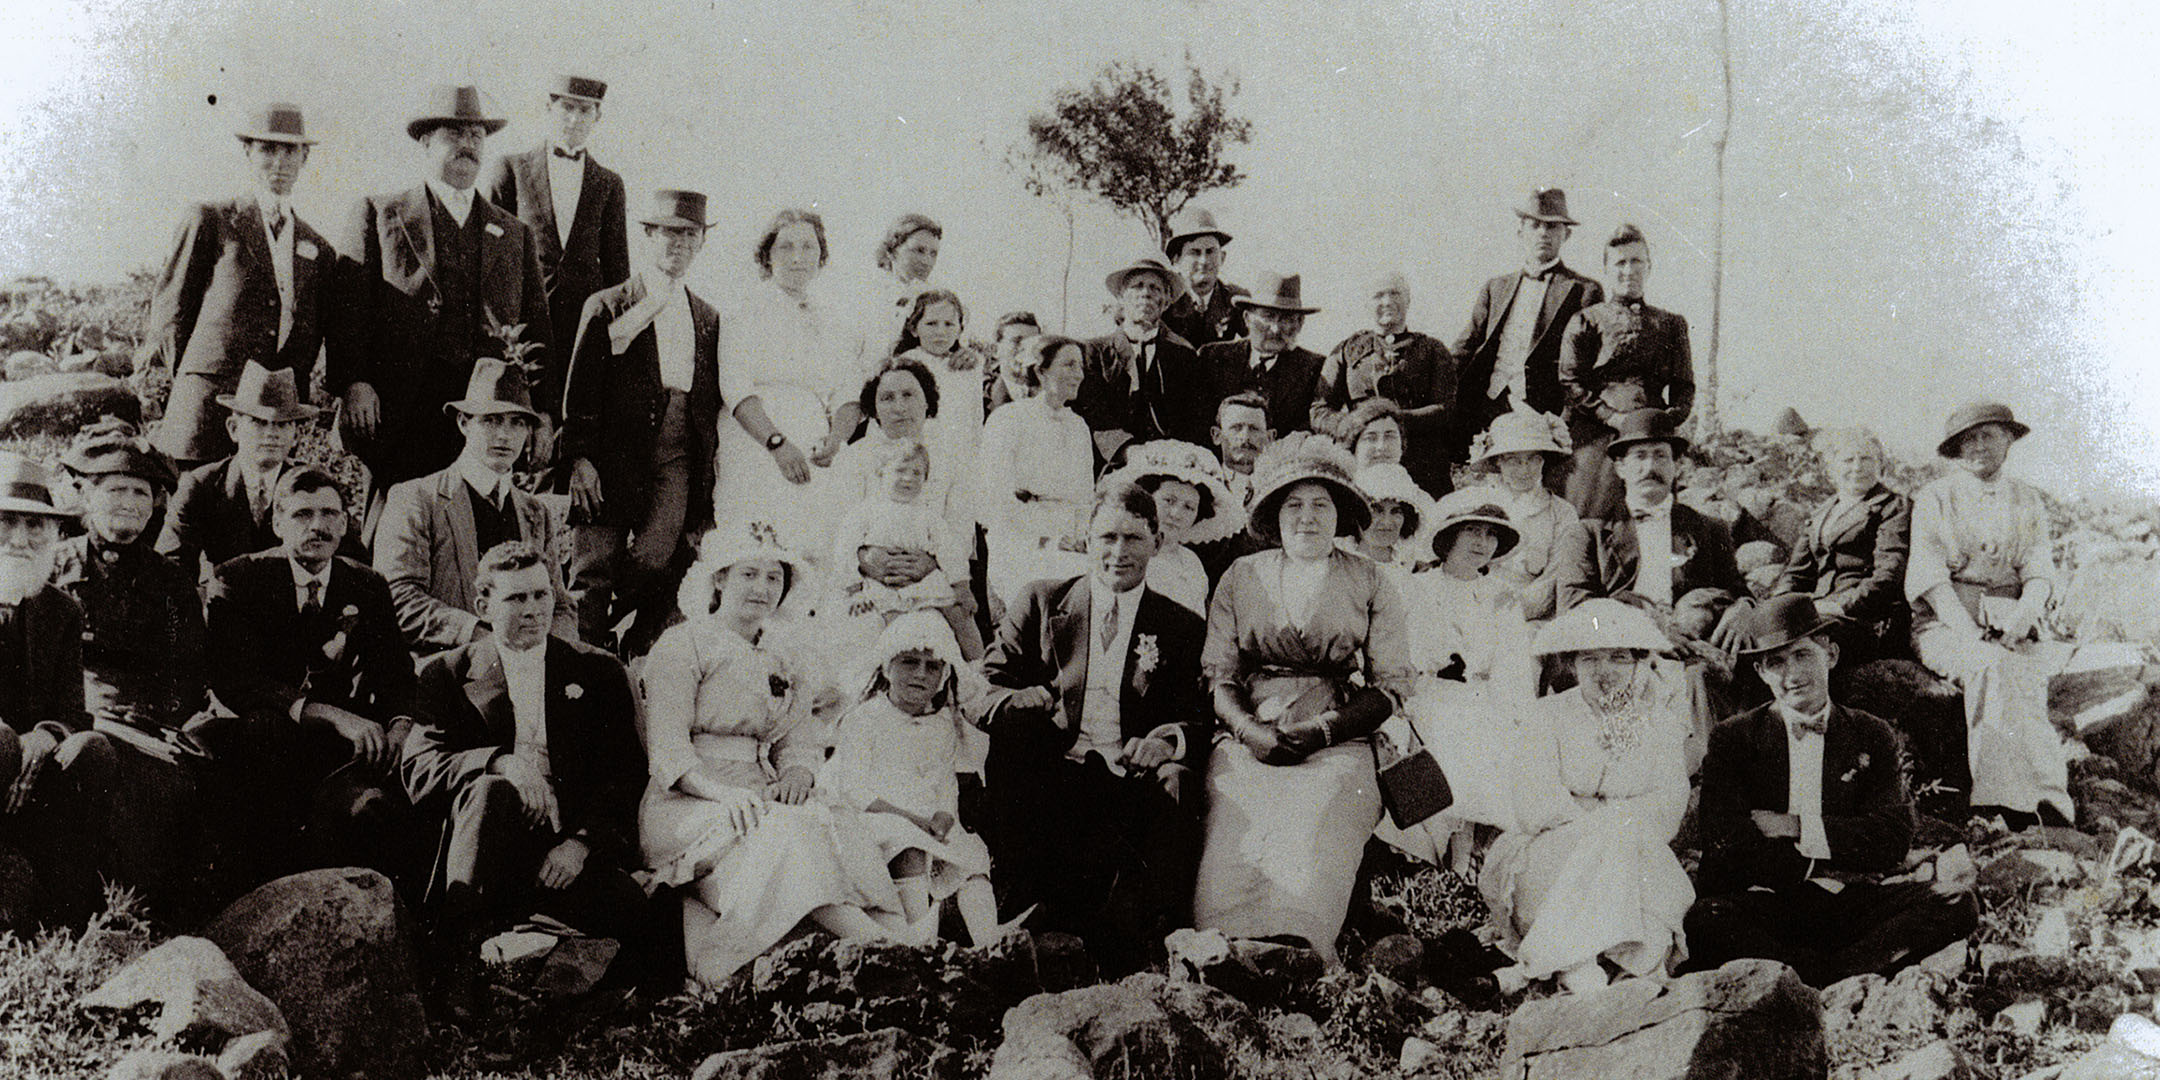 Going away party for the wedding of Maria and Lorenzo Roder's daughter, Mary (front row, holding handbag), c 1921. Maria and Lorenzo are in the back row, third and fourth from right. Reproduced courtesy Pauline Lovitt.